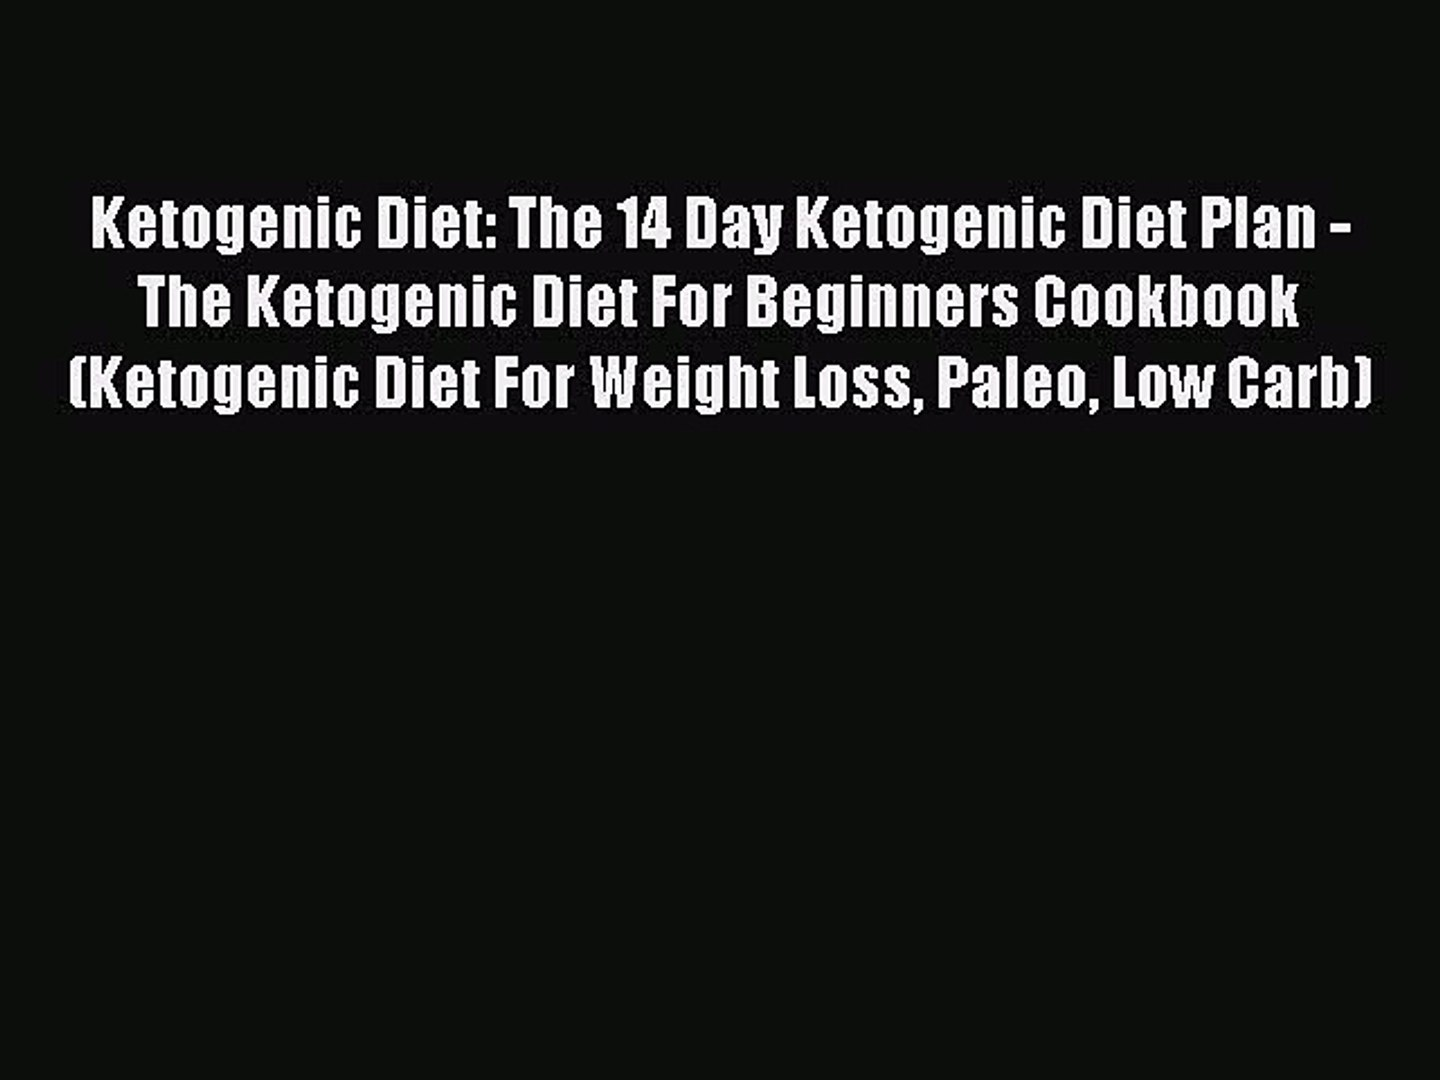 Download Ketogenic Diet: The 14 Day Ketogenic Diet Plan - The Ketogenic Diet For Beginners